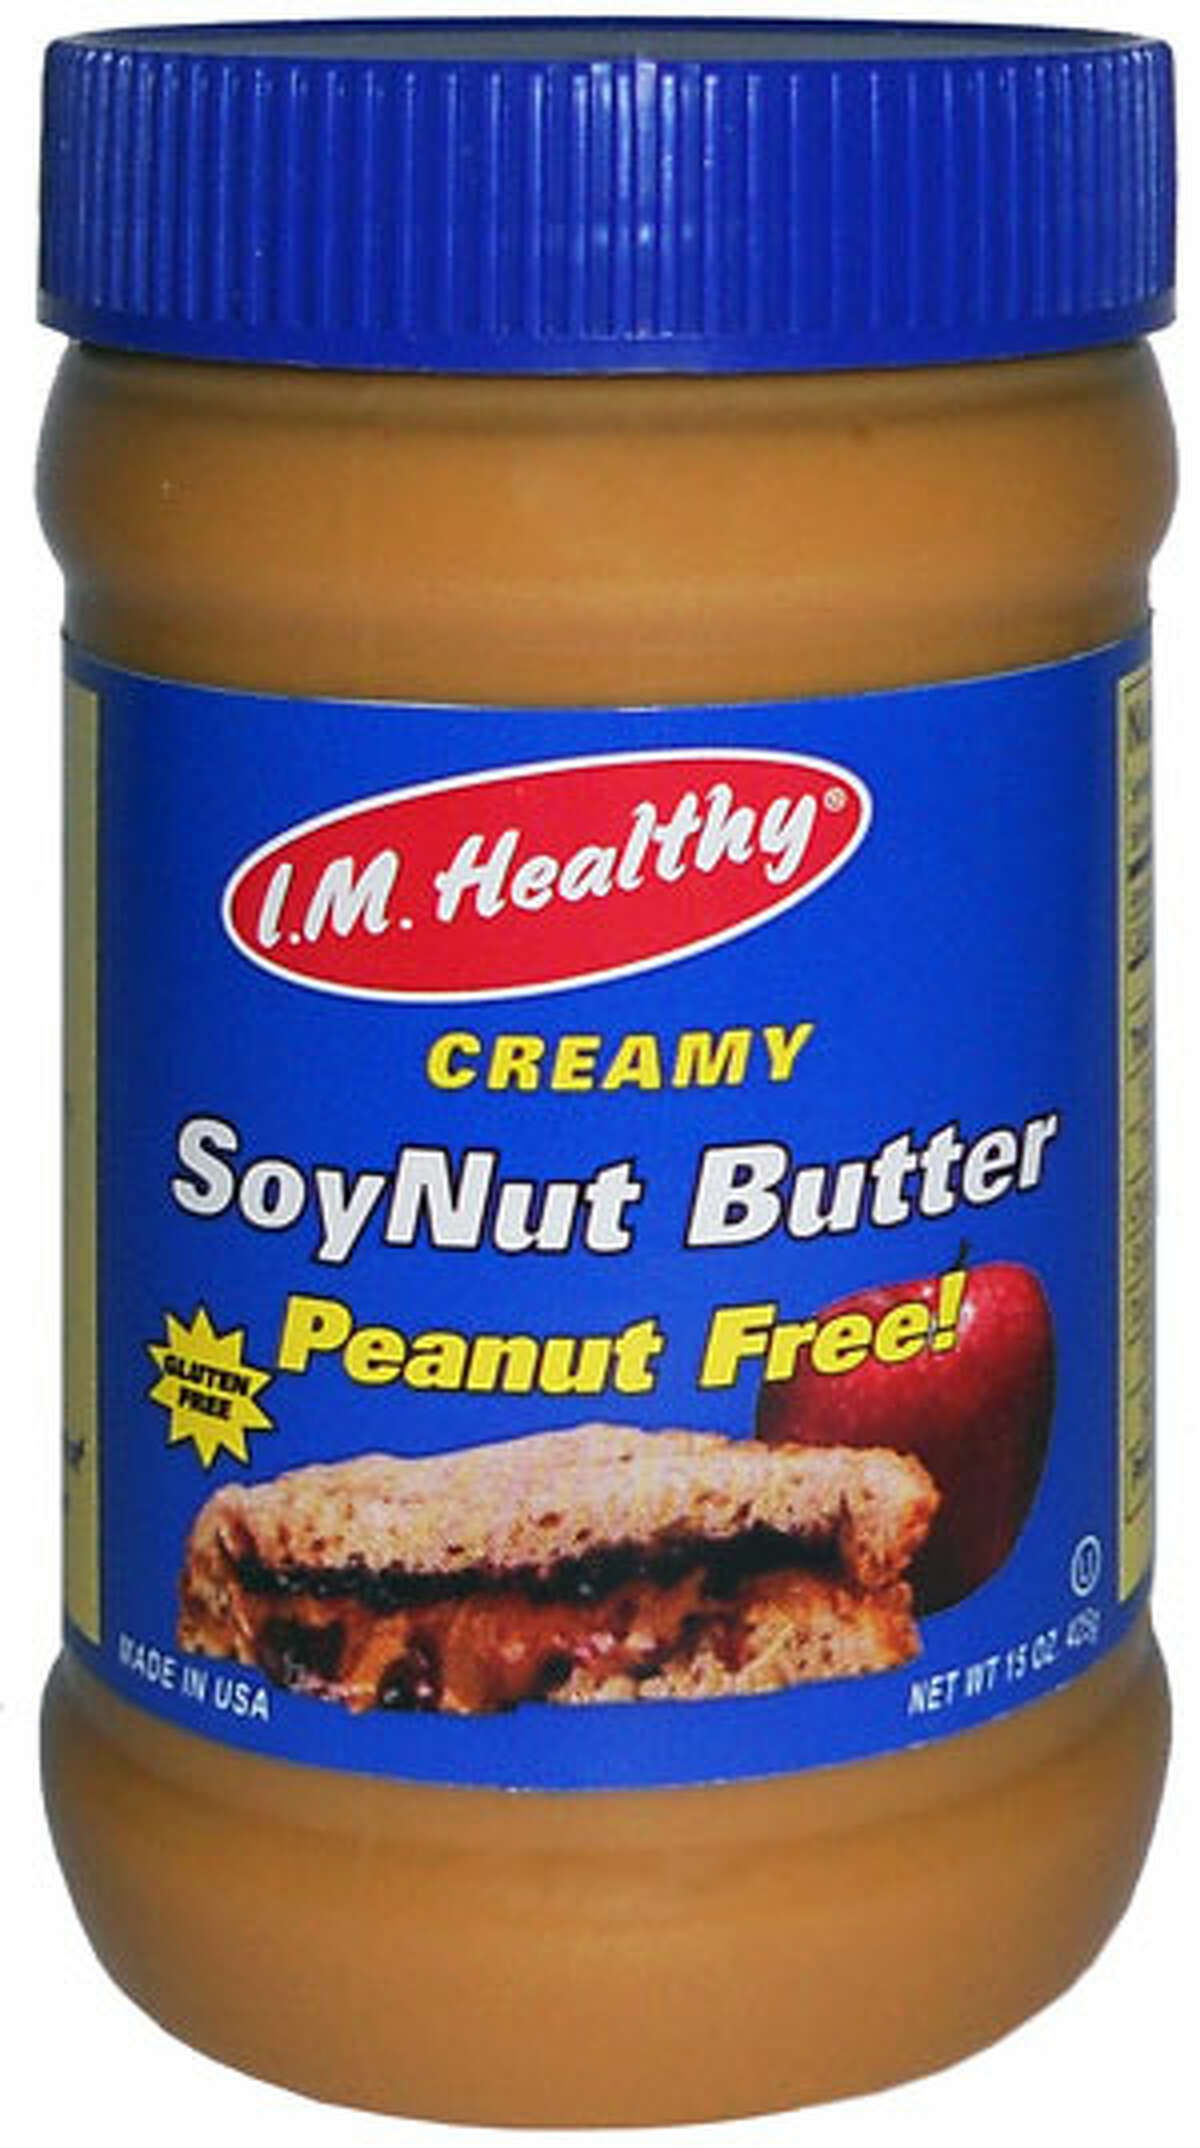 Peanut butter substitute, SoyNut Butter, has been recalled due to an E. coli outbreak linked to the product.